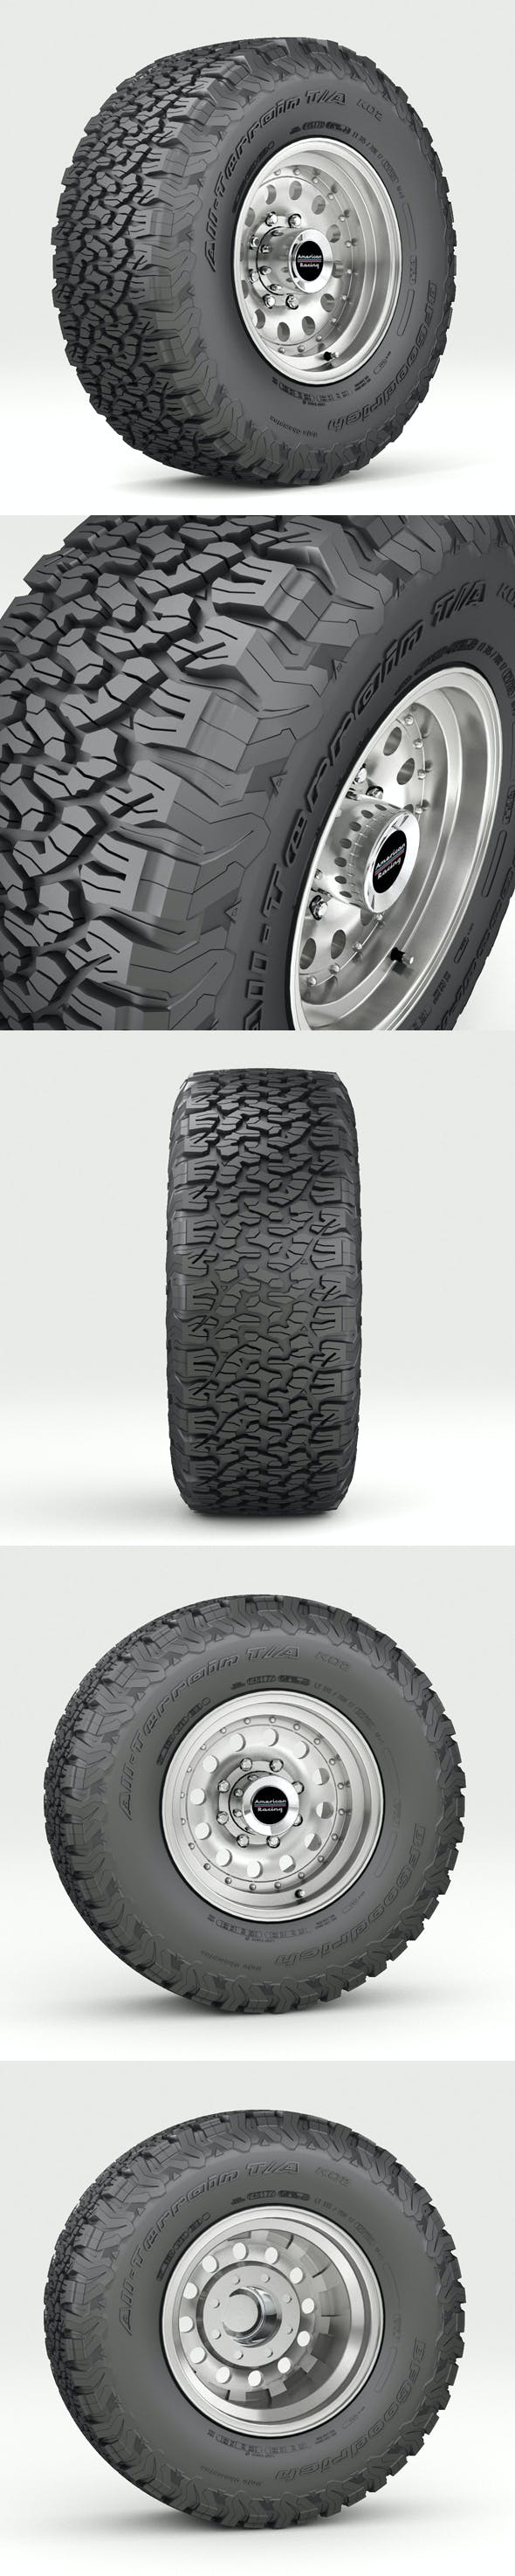 Off Road wheel and tire 5 - 3DOcean Item for Sale